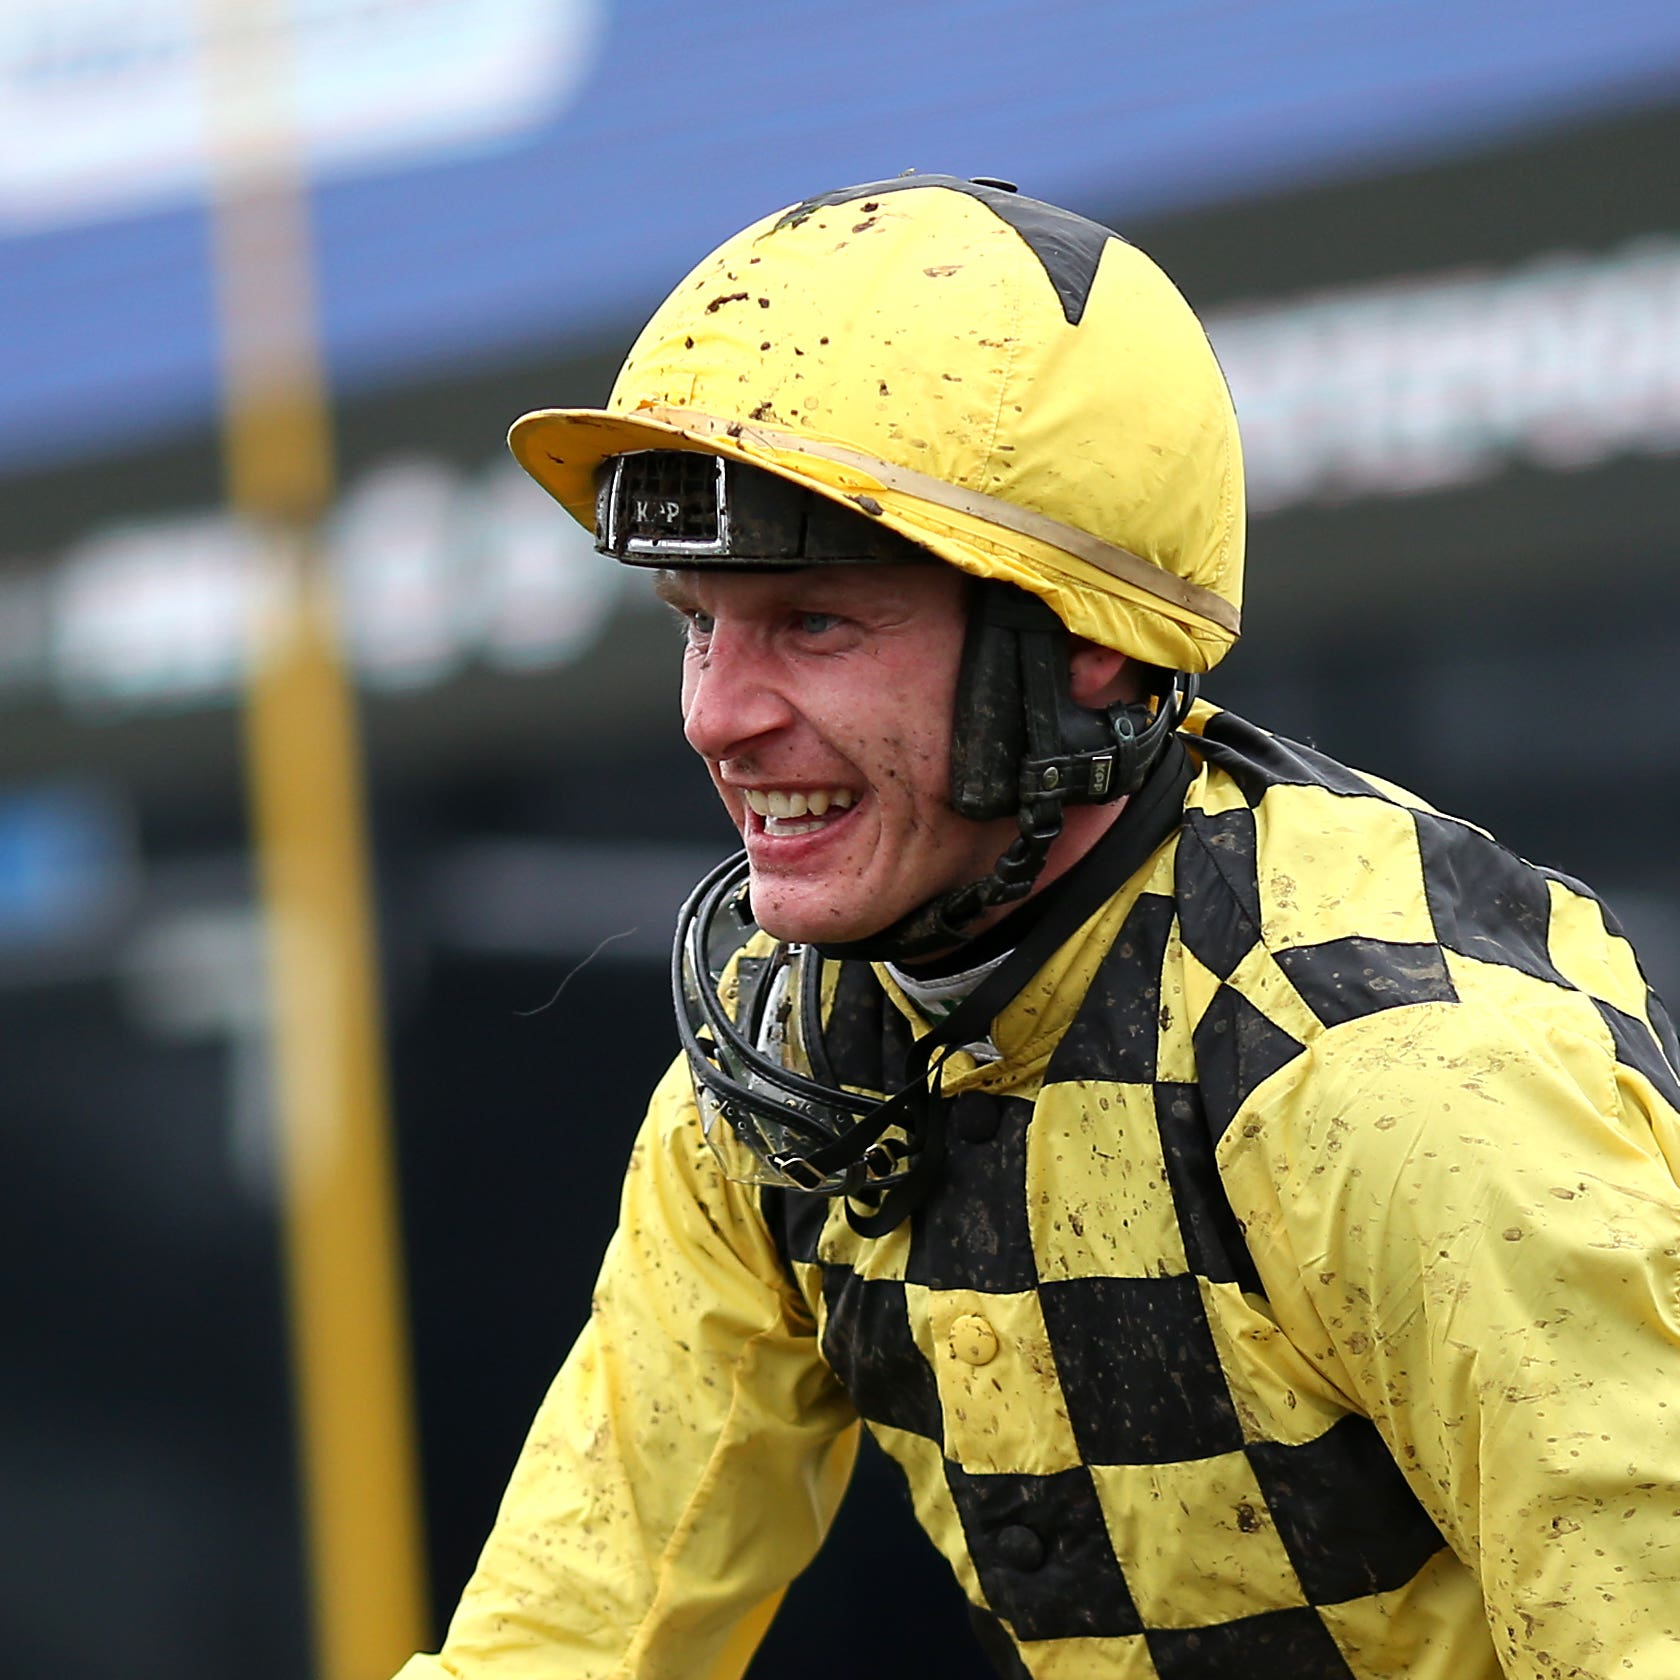 Paul Townend has added his 100th winner of the season in Ireland to his Cheltenham Gold Cup success